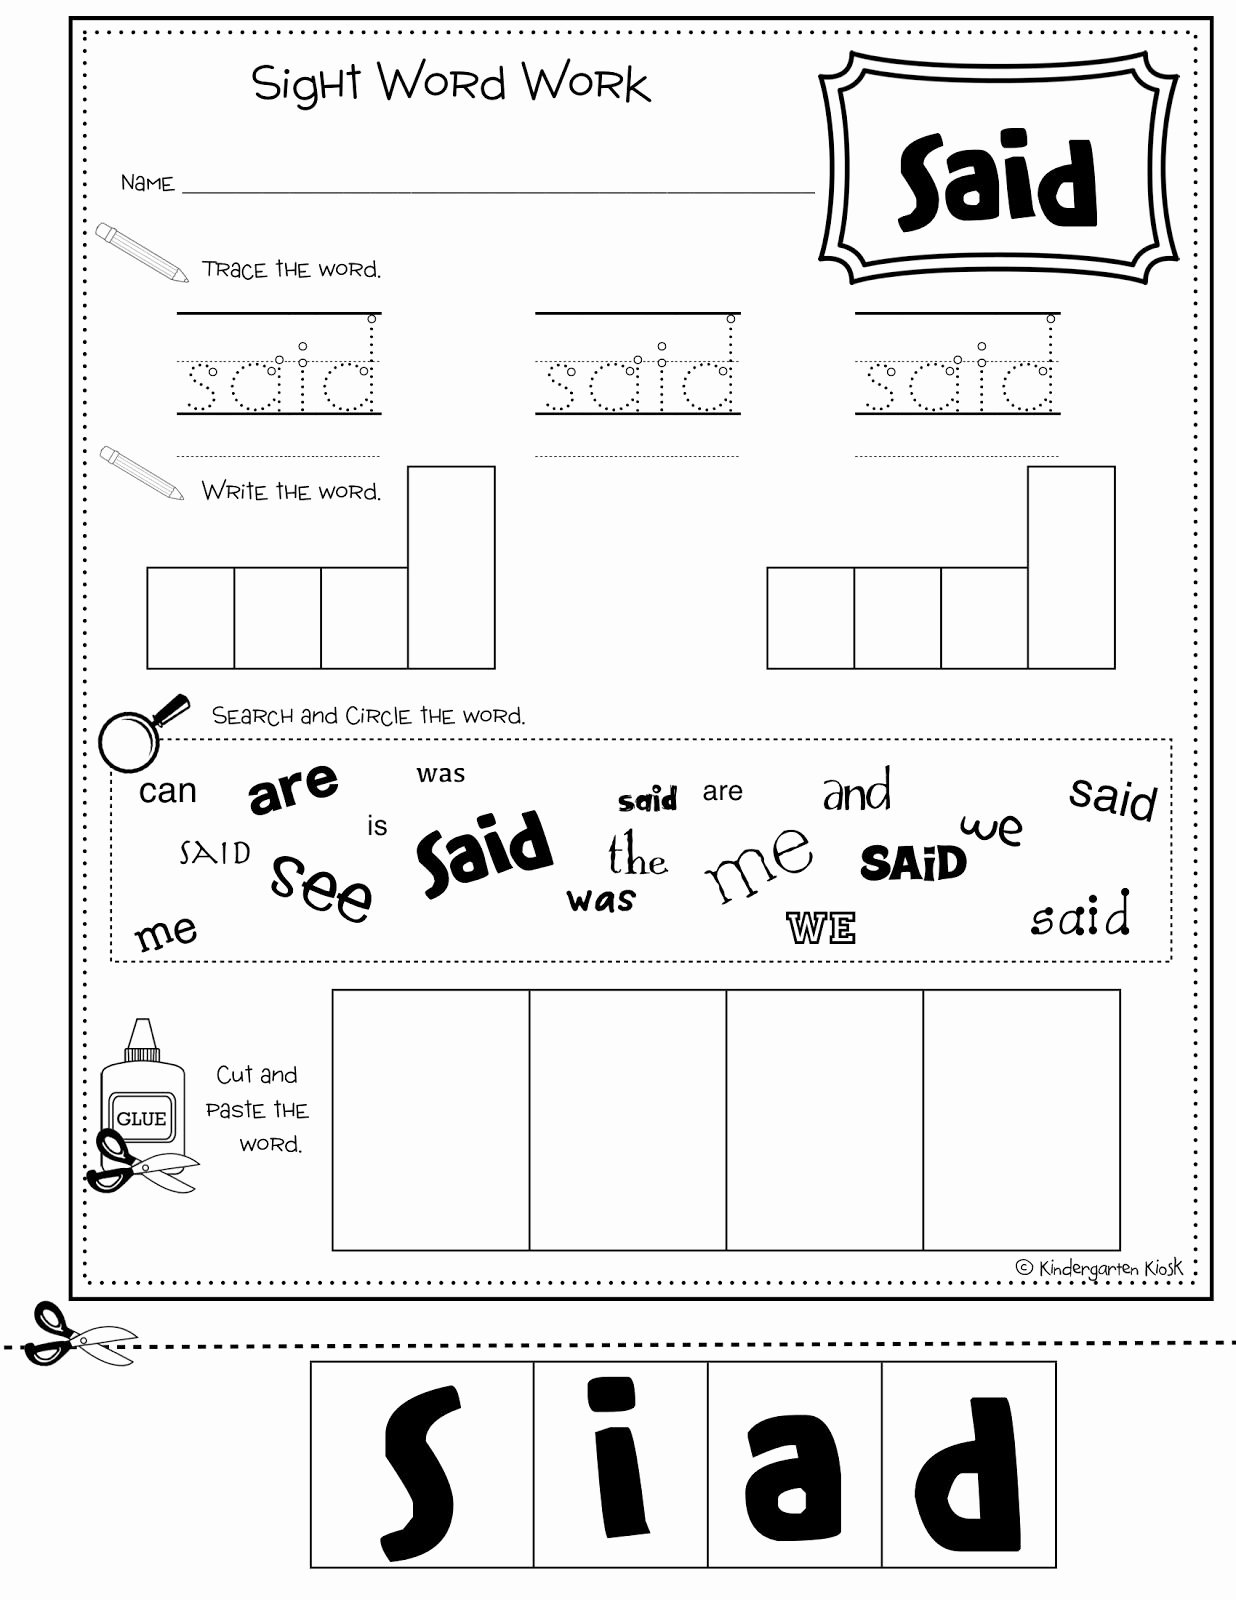 Sight Words Worksheet for Kindergarten Unique Make Sight Word Worksheets